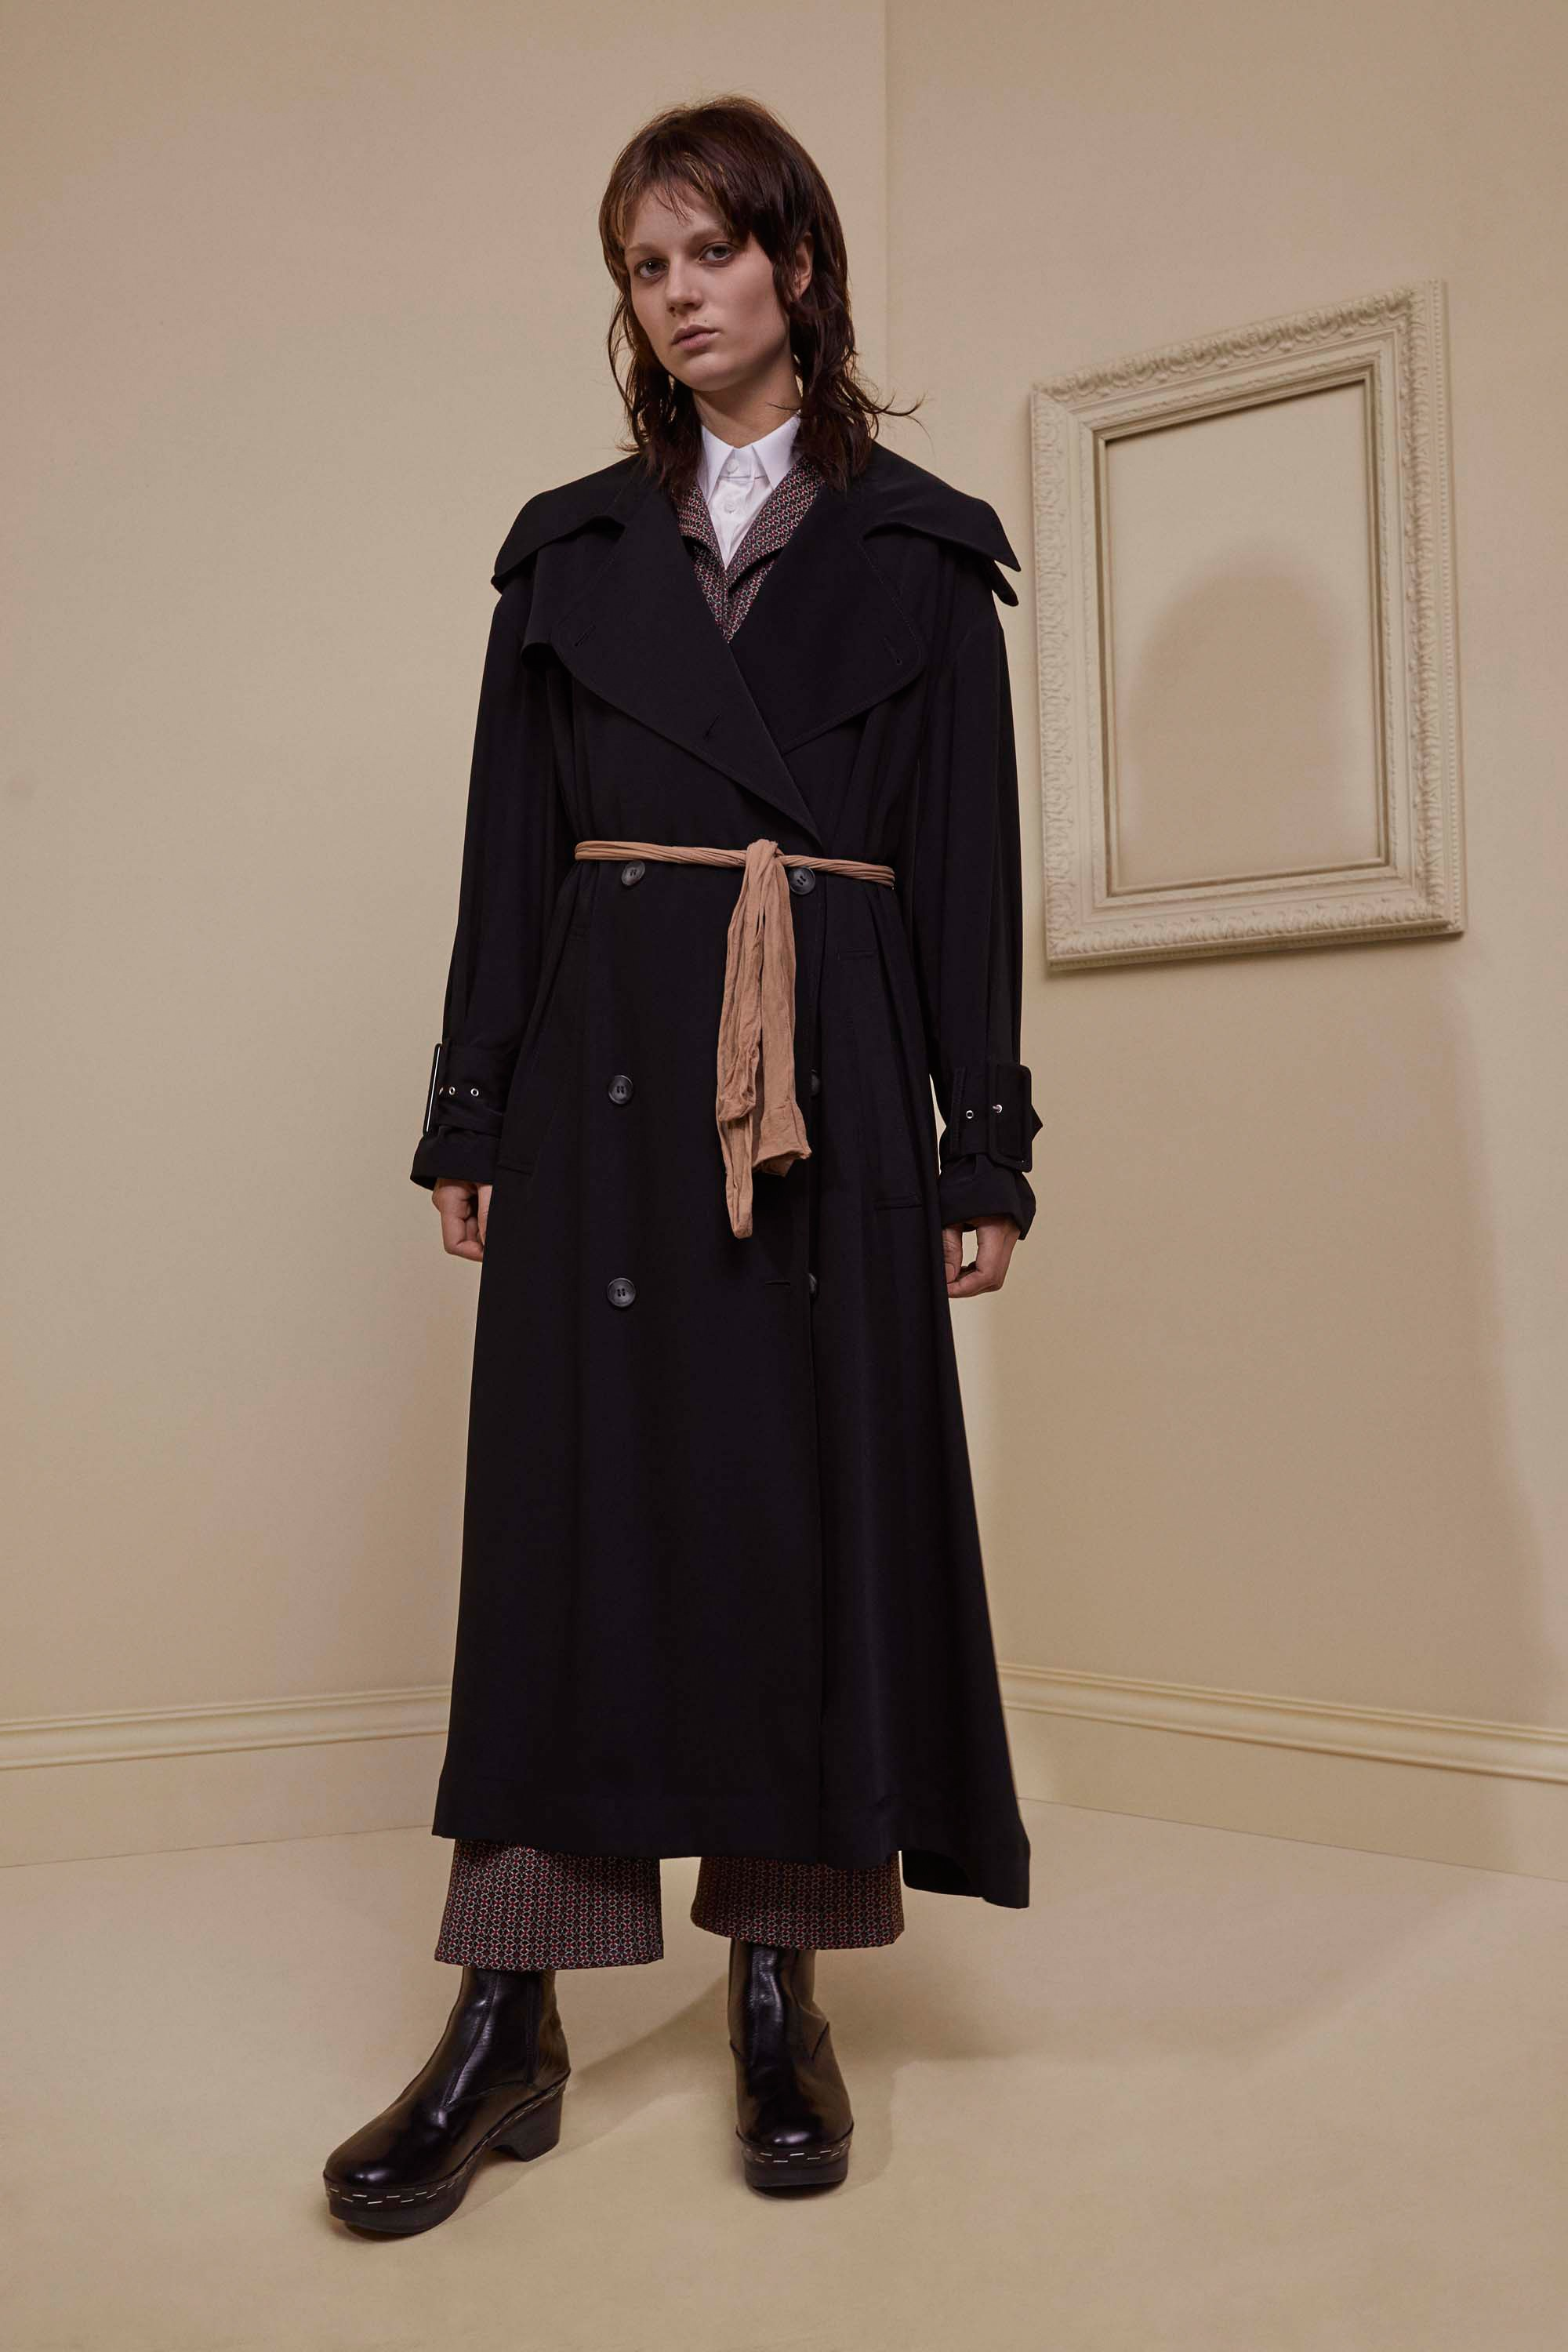 mm6-maison-margiela-pre-fall-2017-fashion-show-the-impression-03